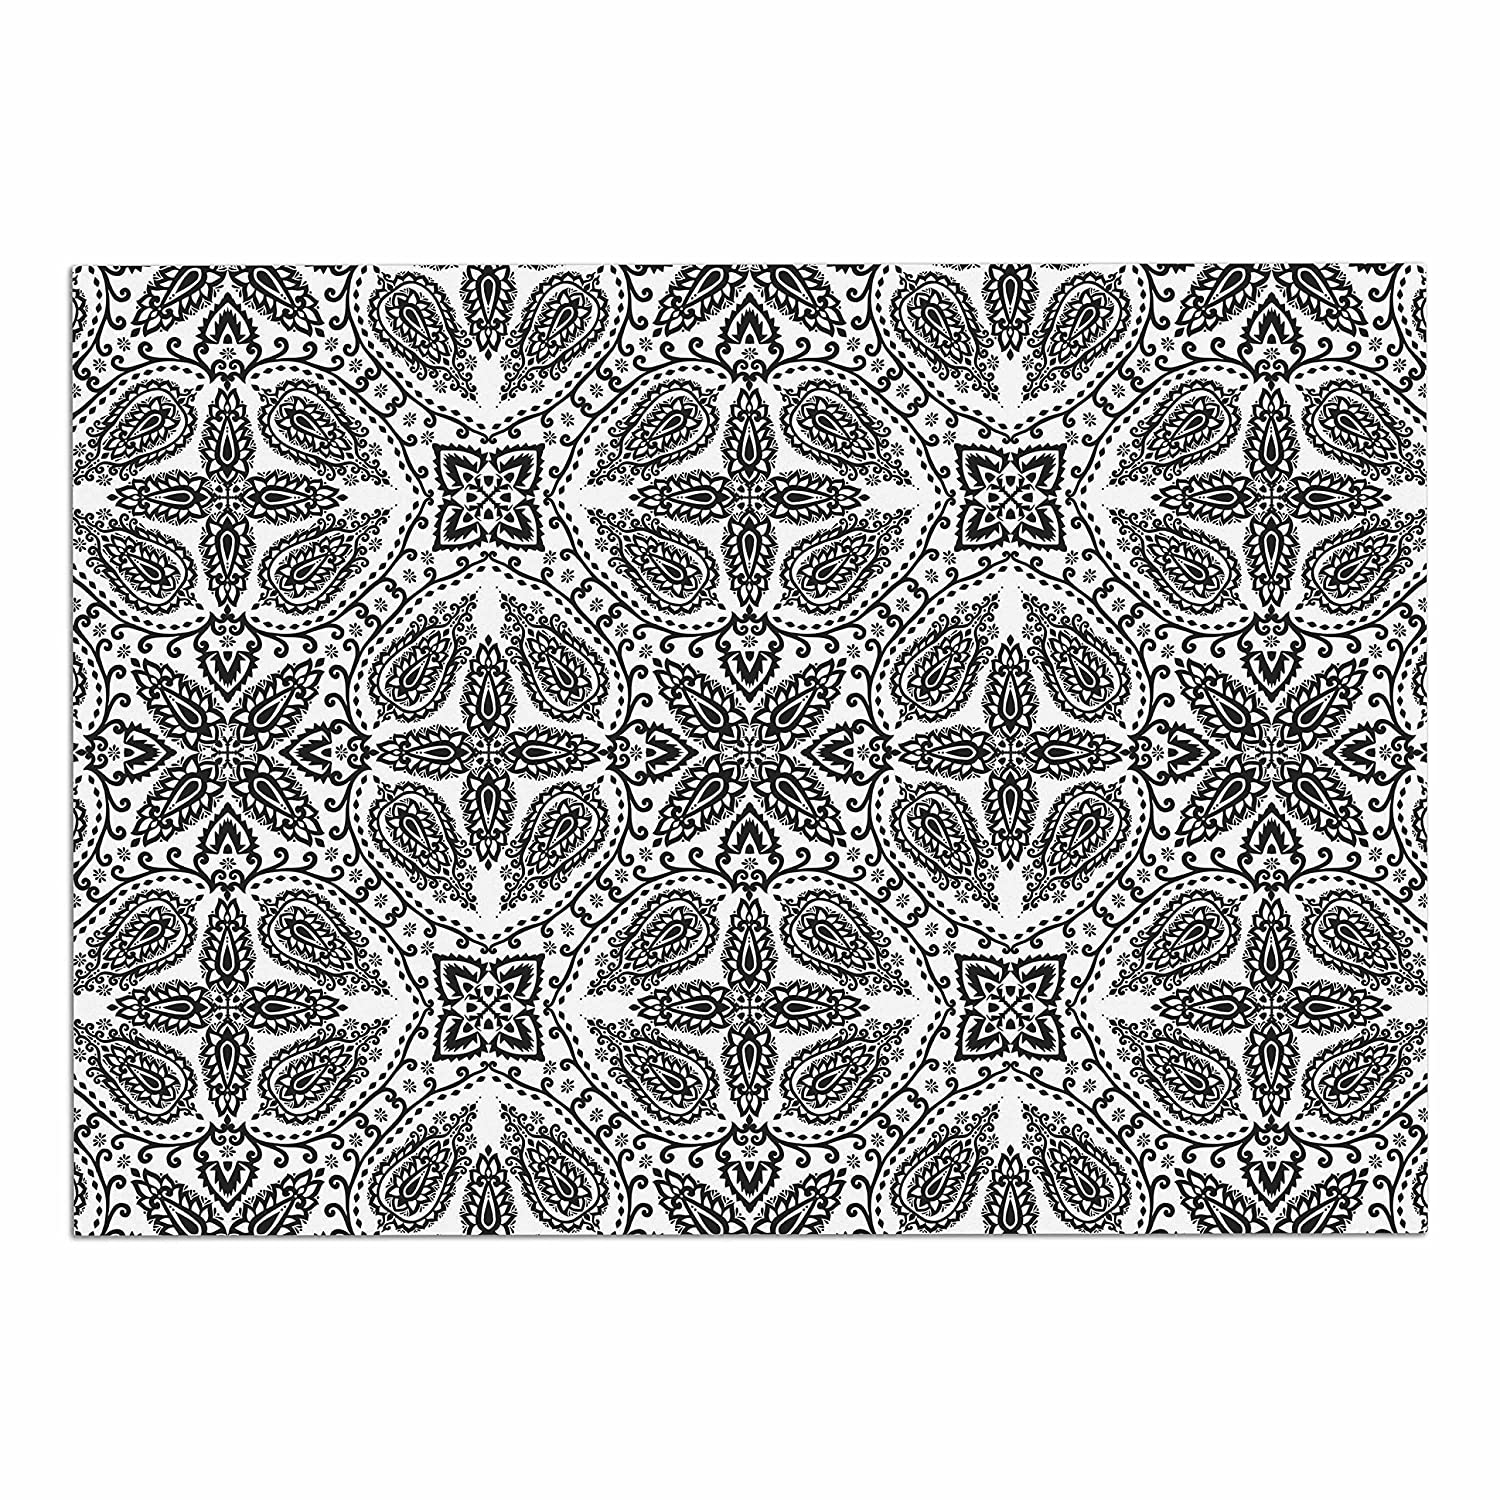 KESS InHouse Nandita Singh Boho in Black & White  Grey Pattern Dog Place Mat, 13  x 18